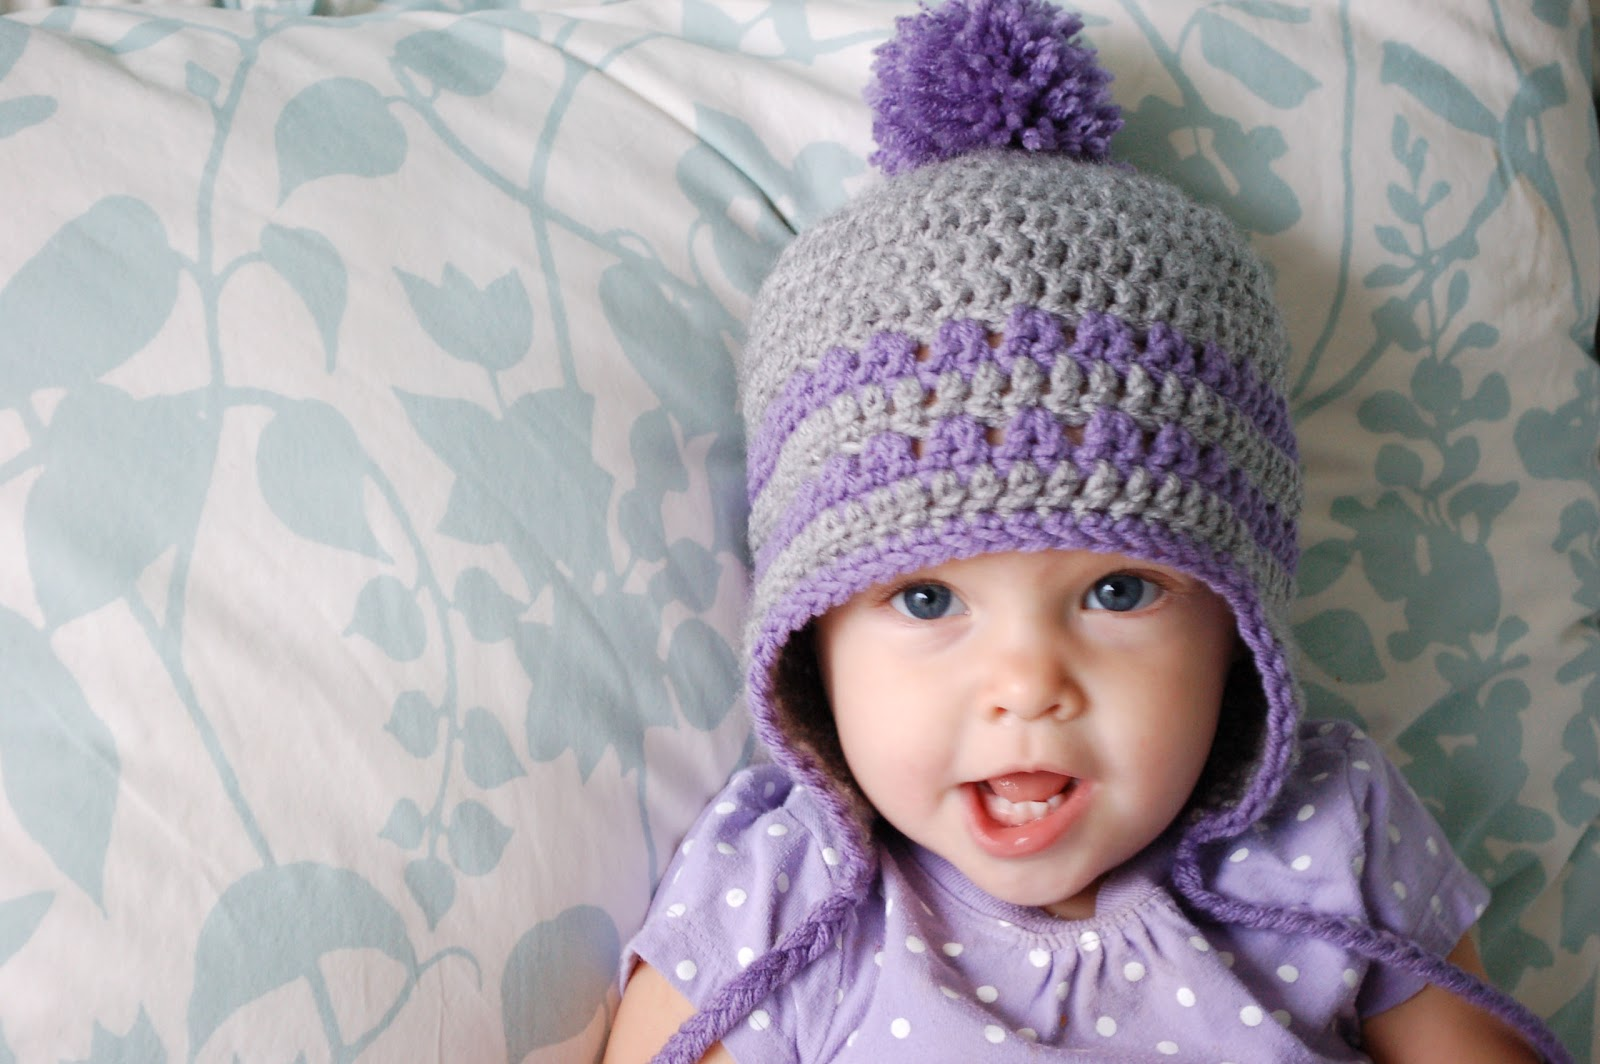 Crochet Patterns Hats For Toddlers : Alli Crafts: Free Pattern: Earflap Hat - 9-12 Months